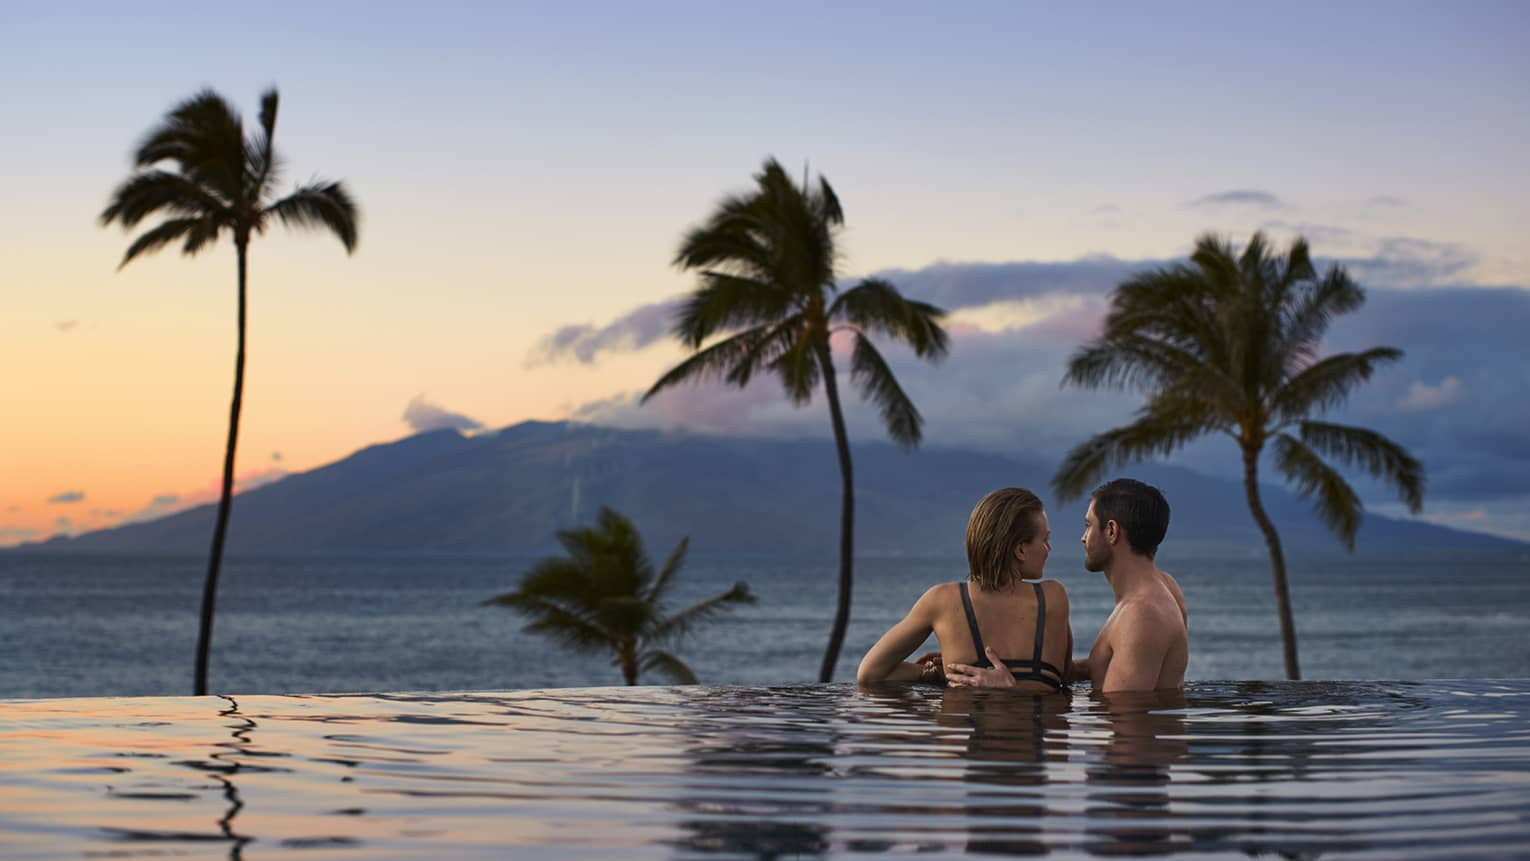 Man rests hand on woman's shoulder in infinity swimming pool, looking out at ocean, mountain and sunset